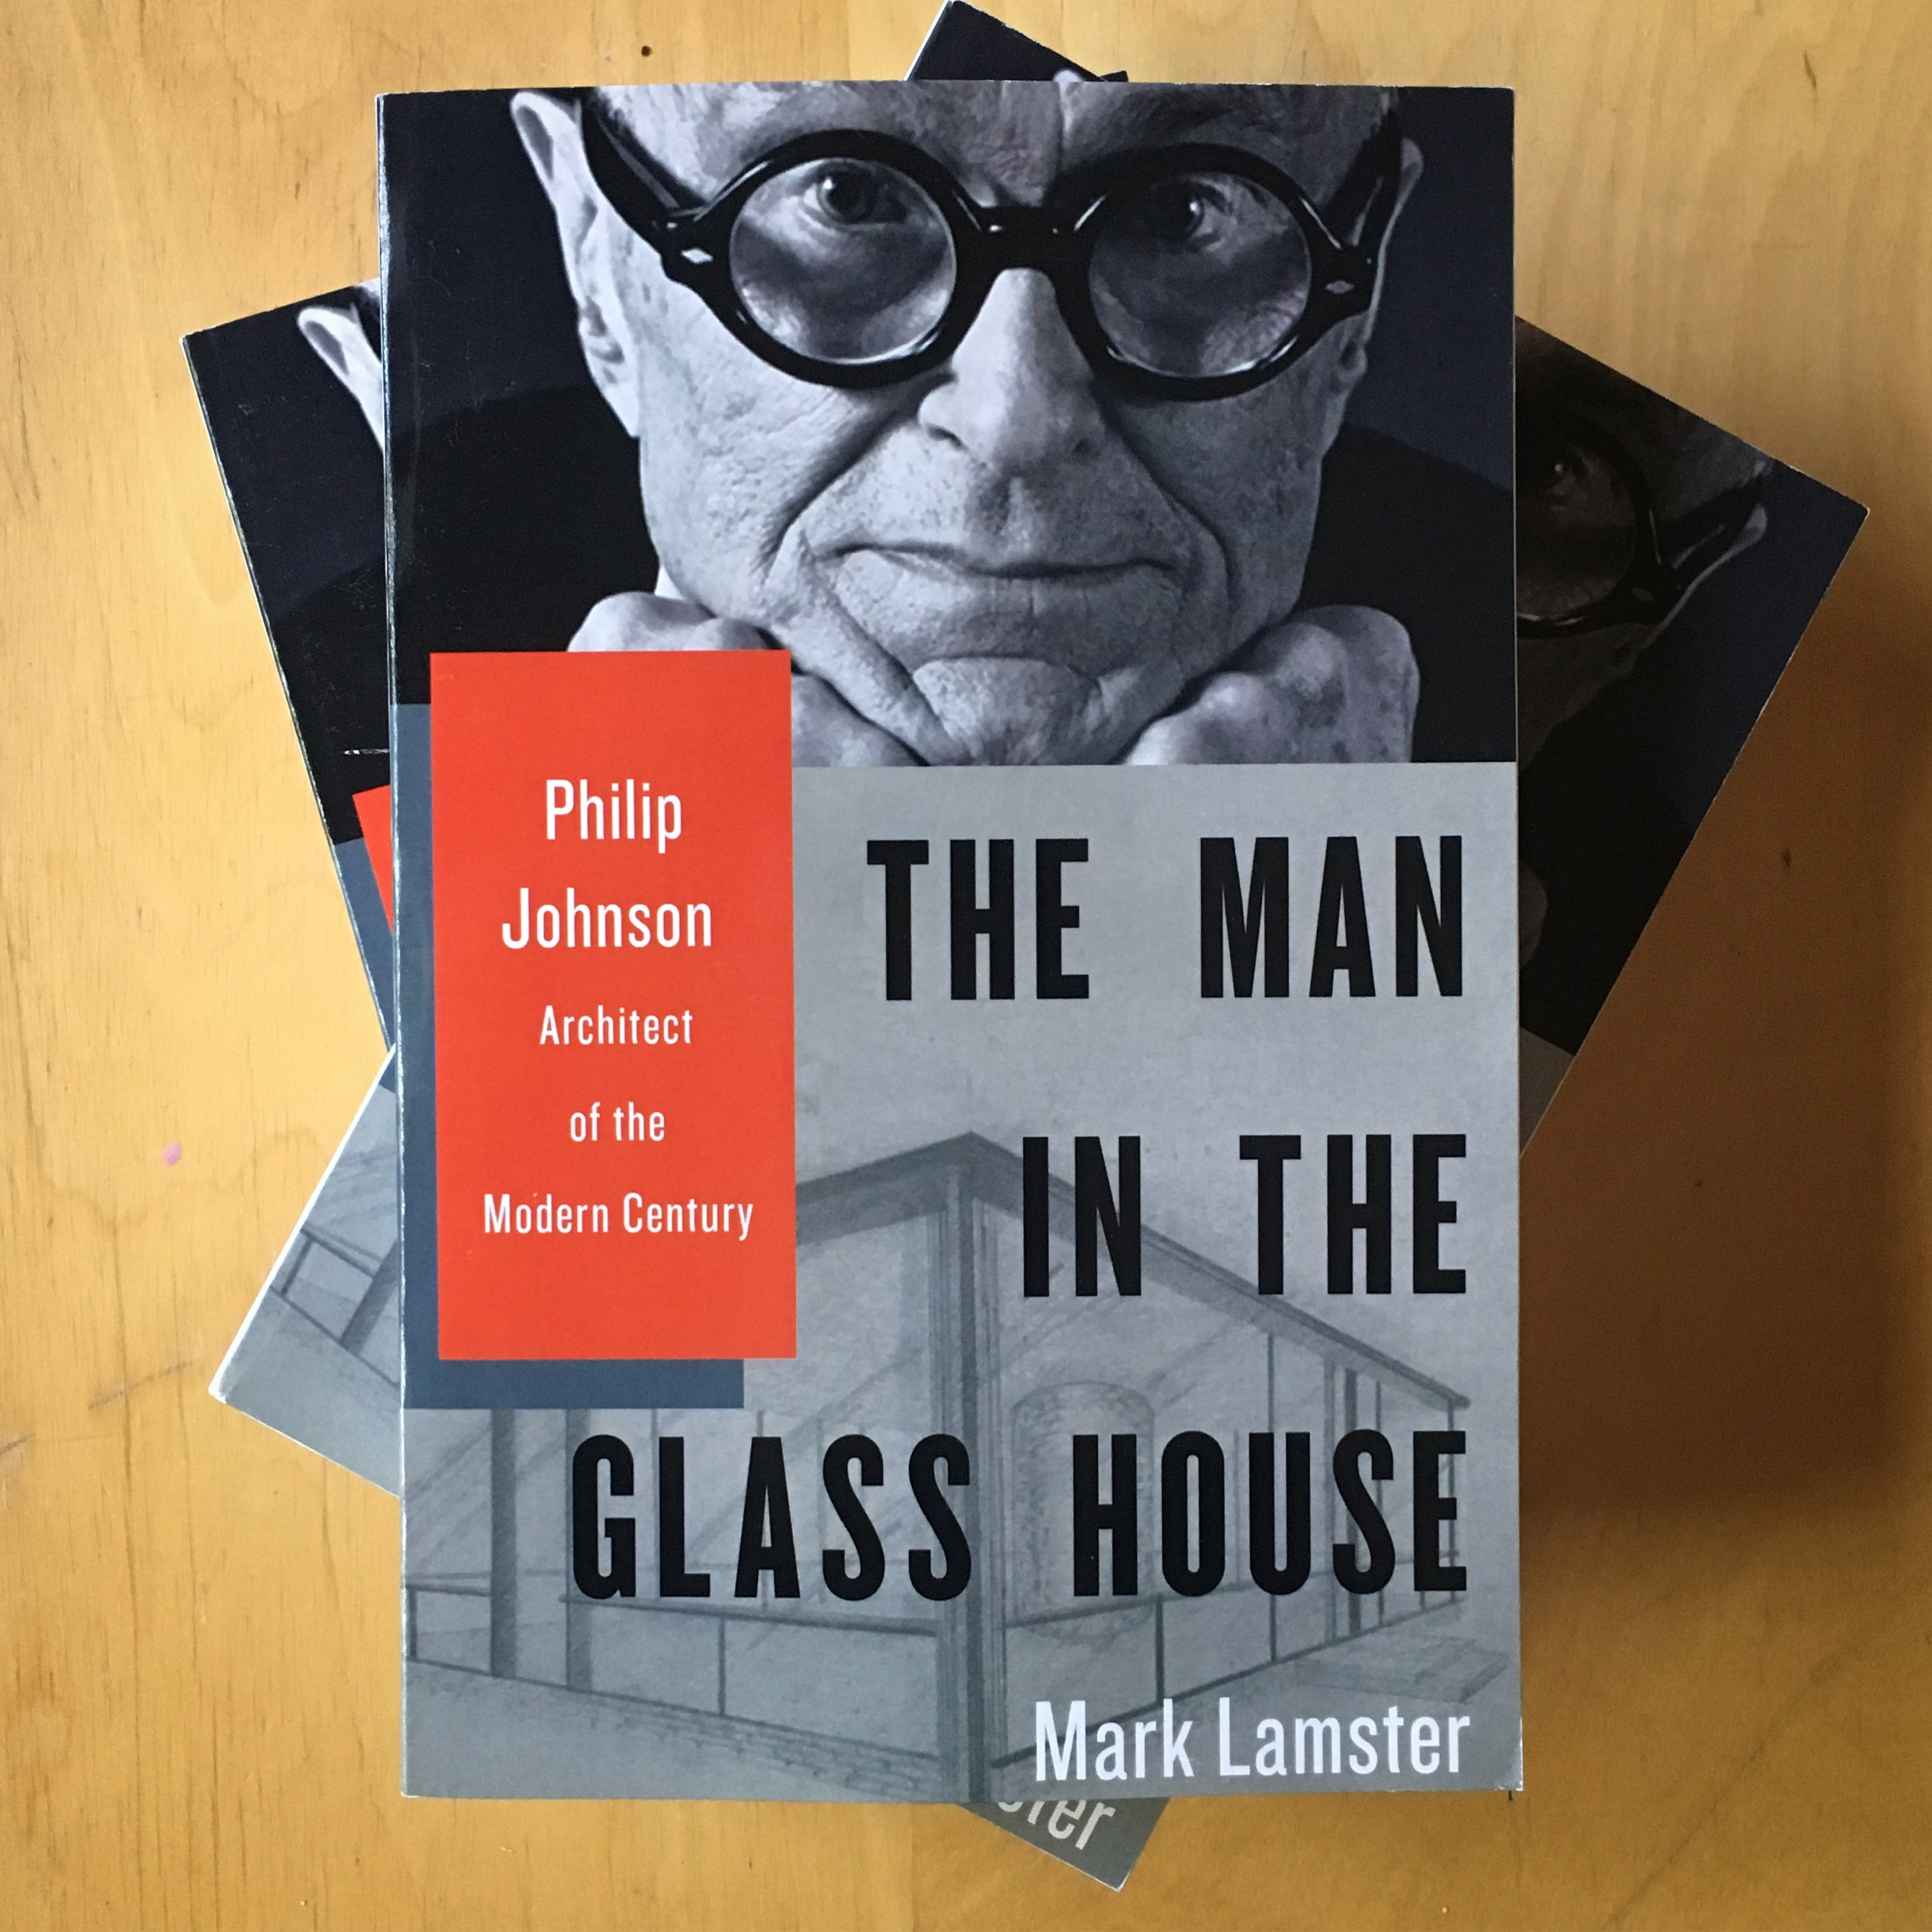 Book Talk: Mark Lamster-The Man in the Glass House